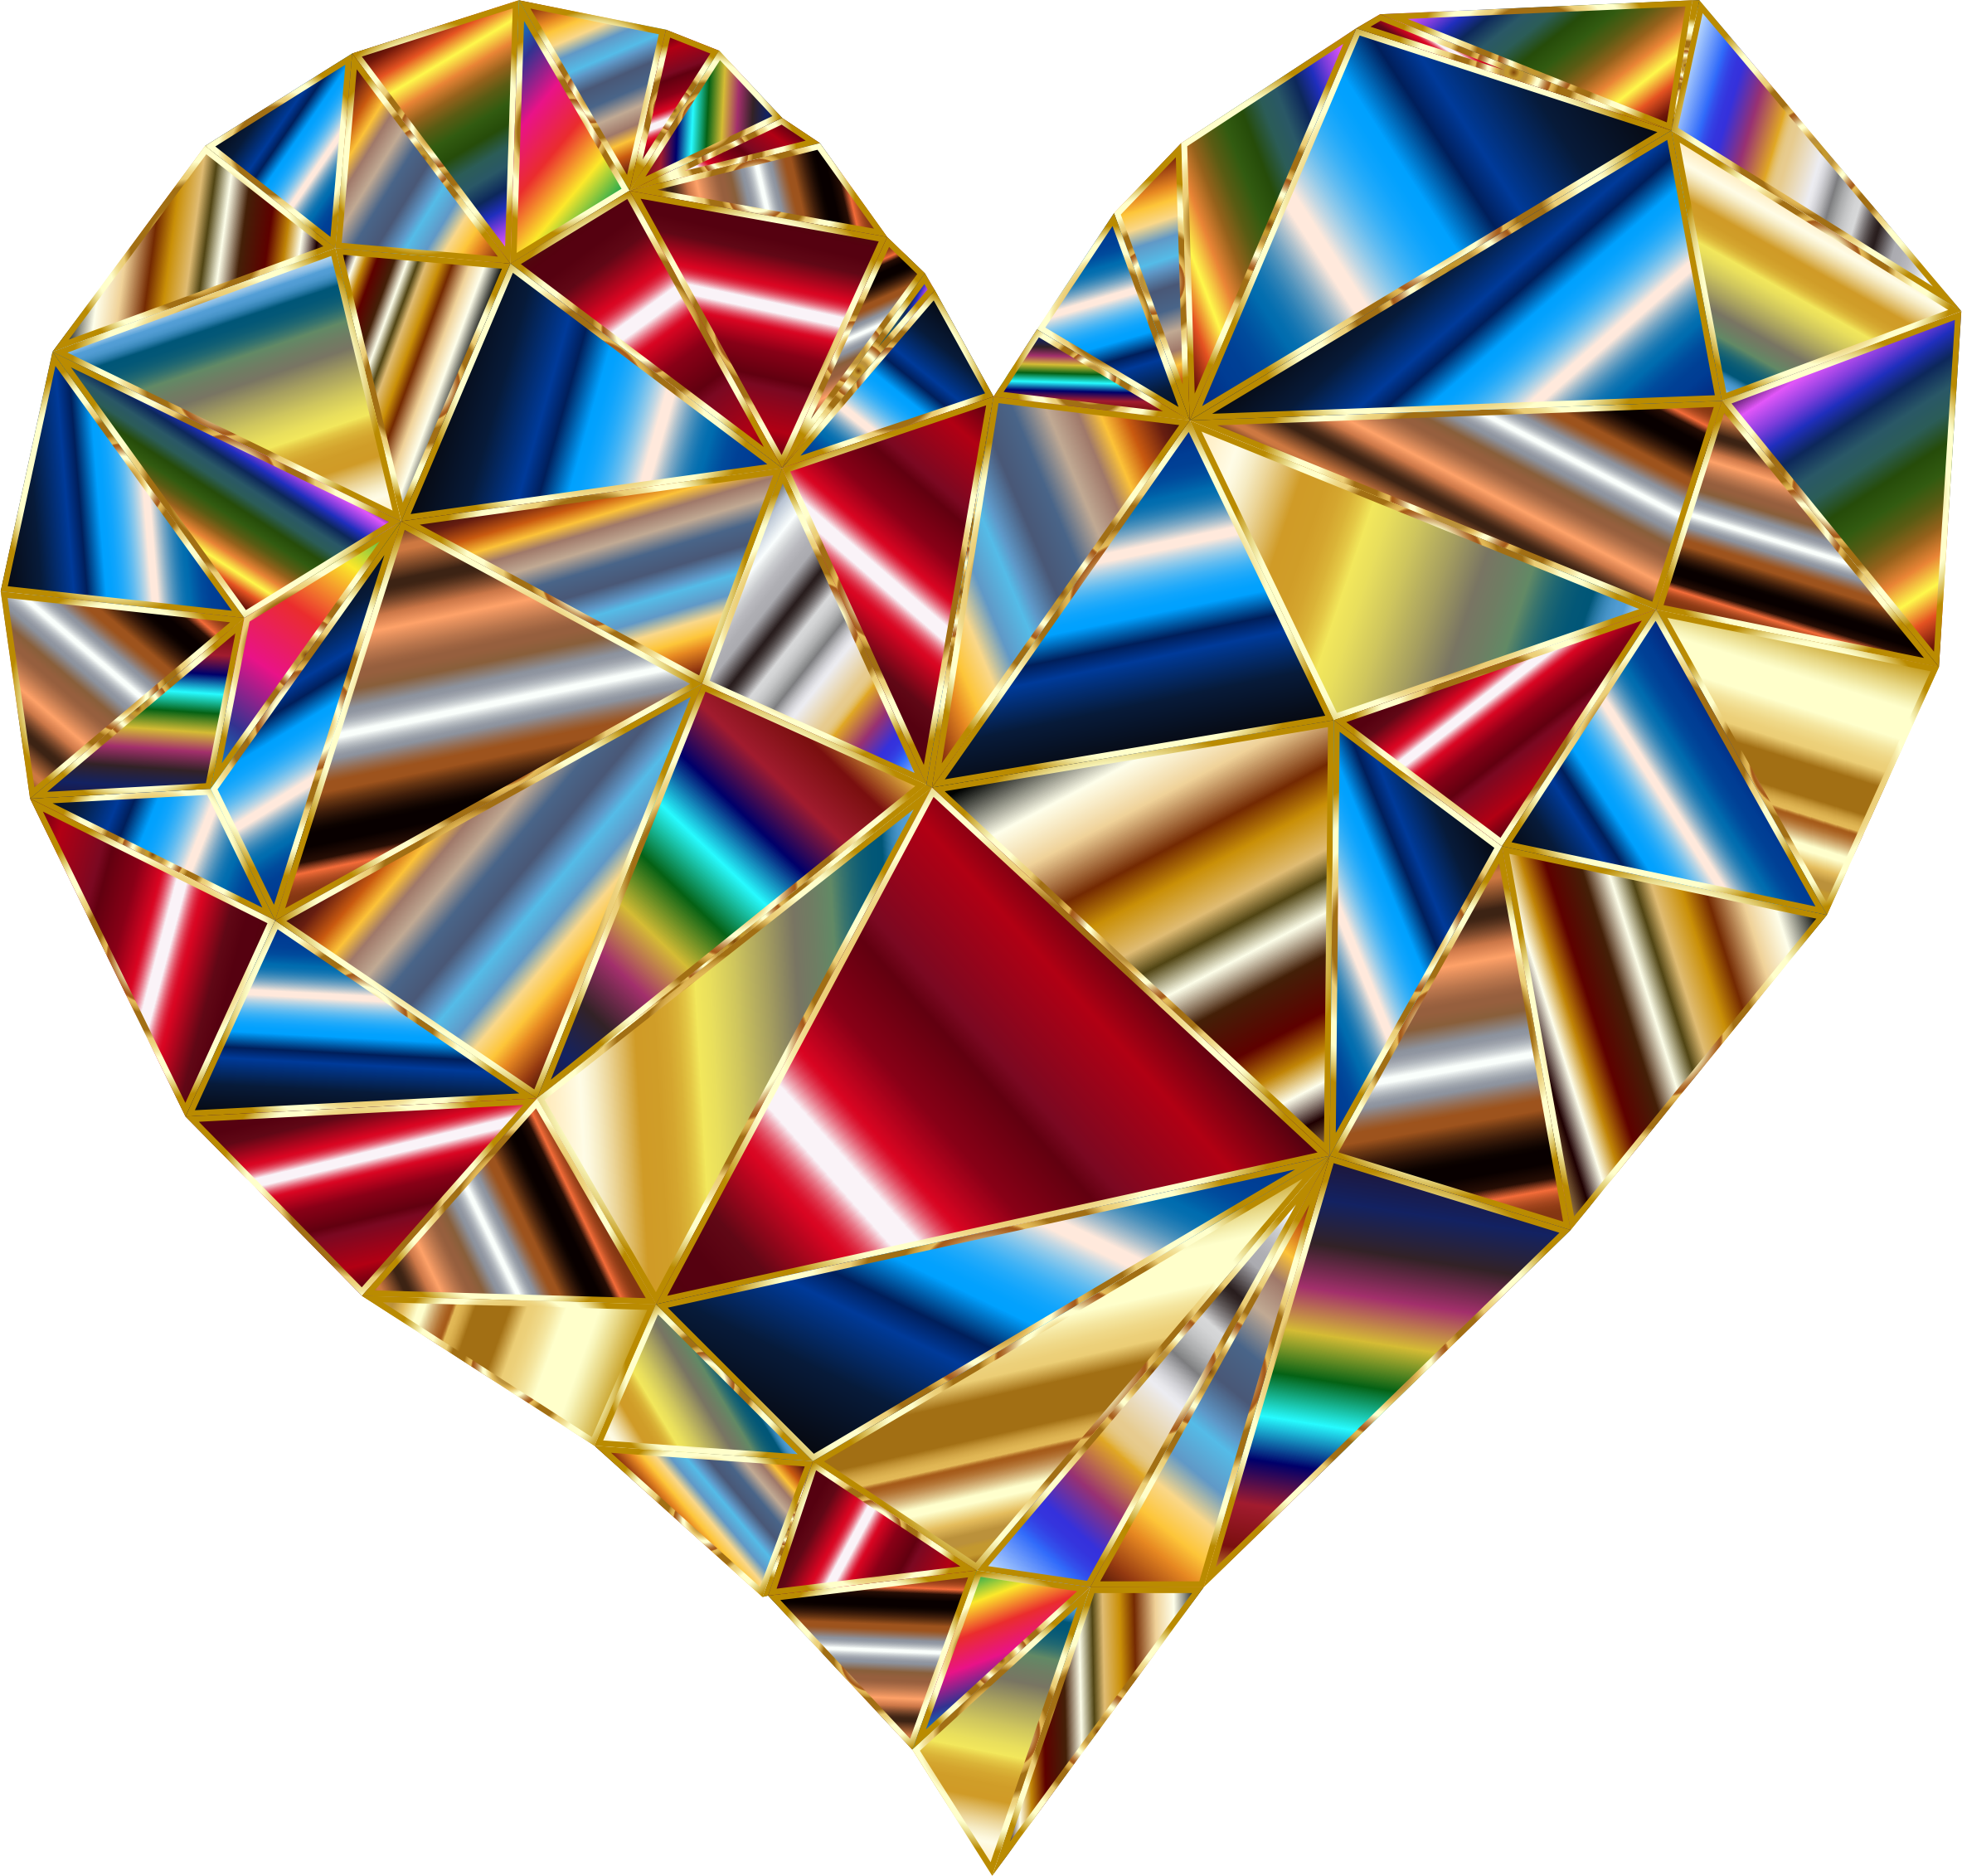 Polychromatic Low Poly Heart 4 by GDJ